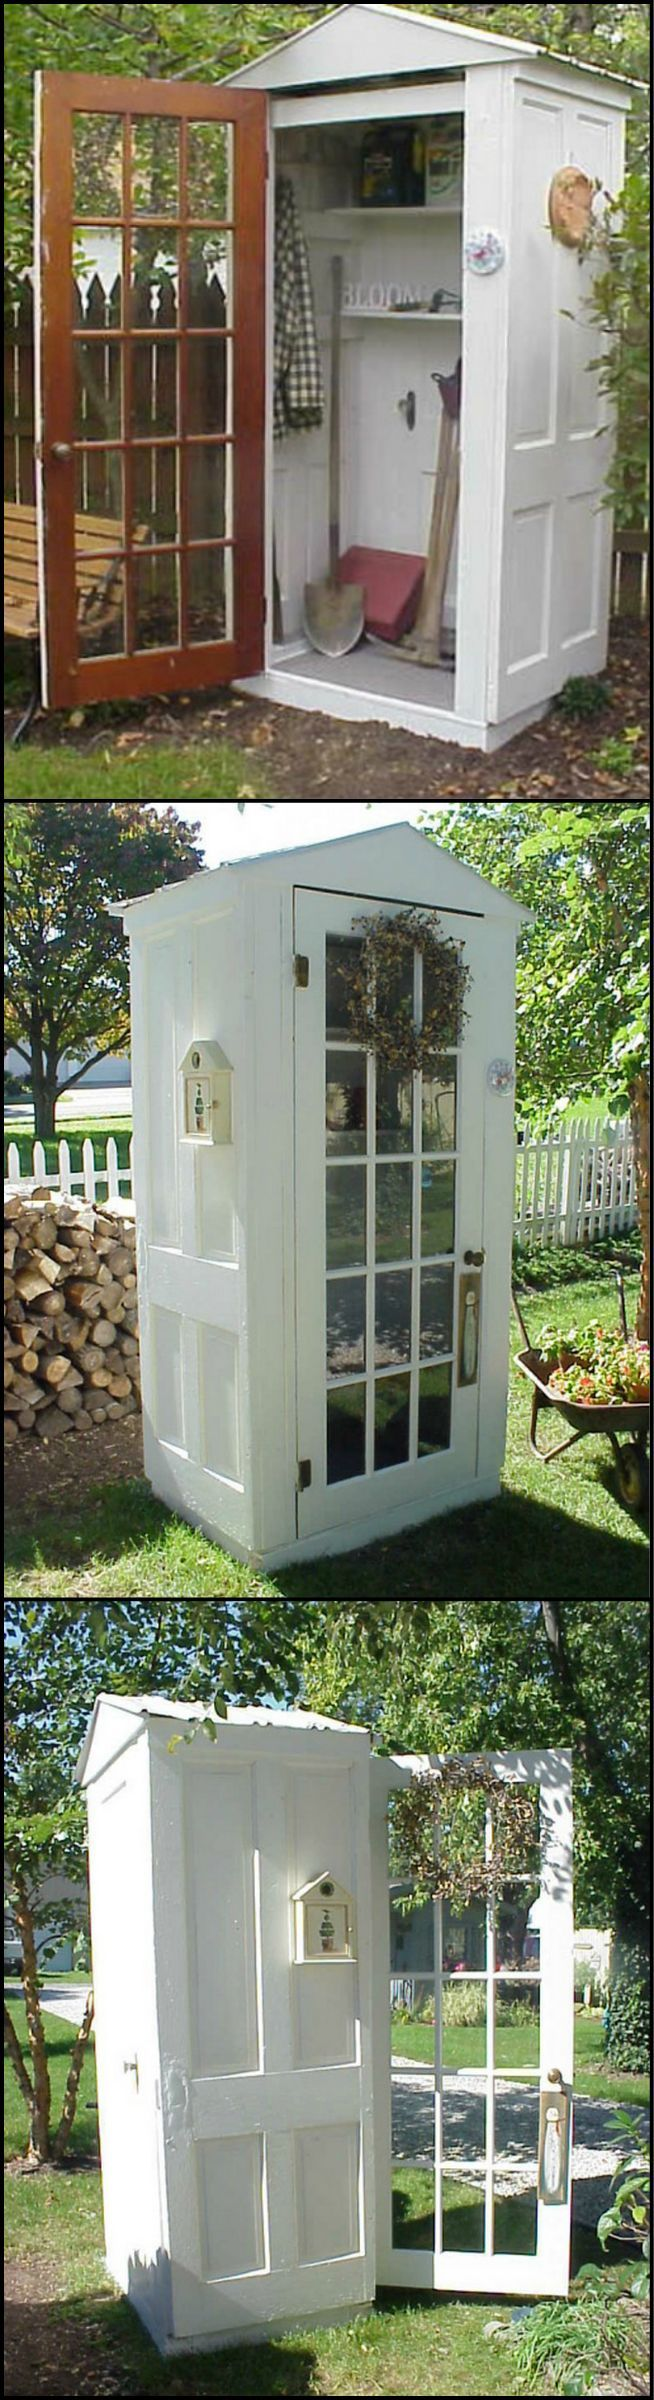 How To Build A Tool Shed From Repurposed Doors theownerbuilderne. This  little shed is a great way to protect your garden tools and recycle some old  doors ...